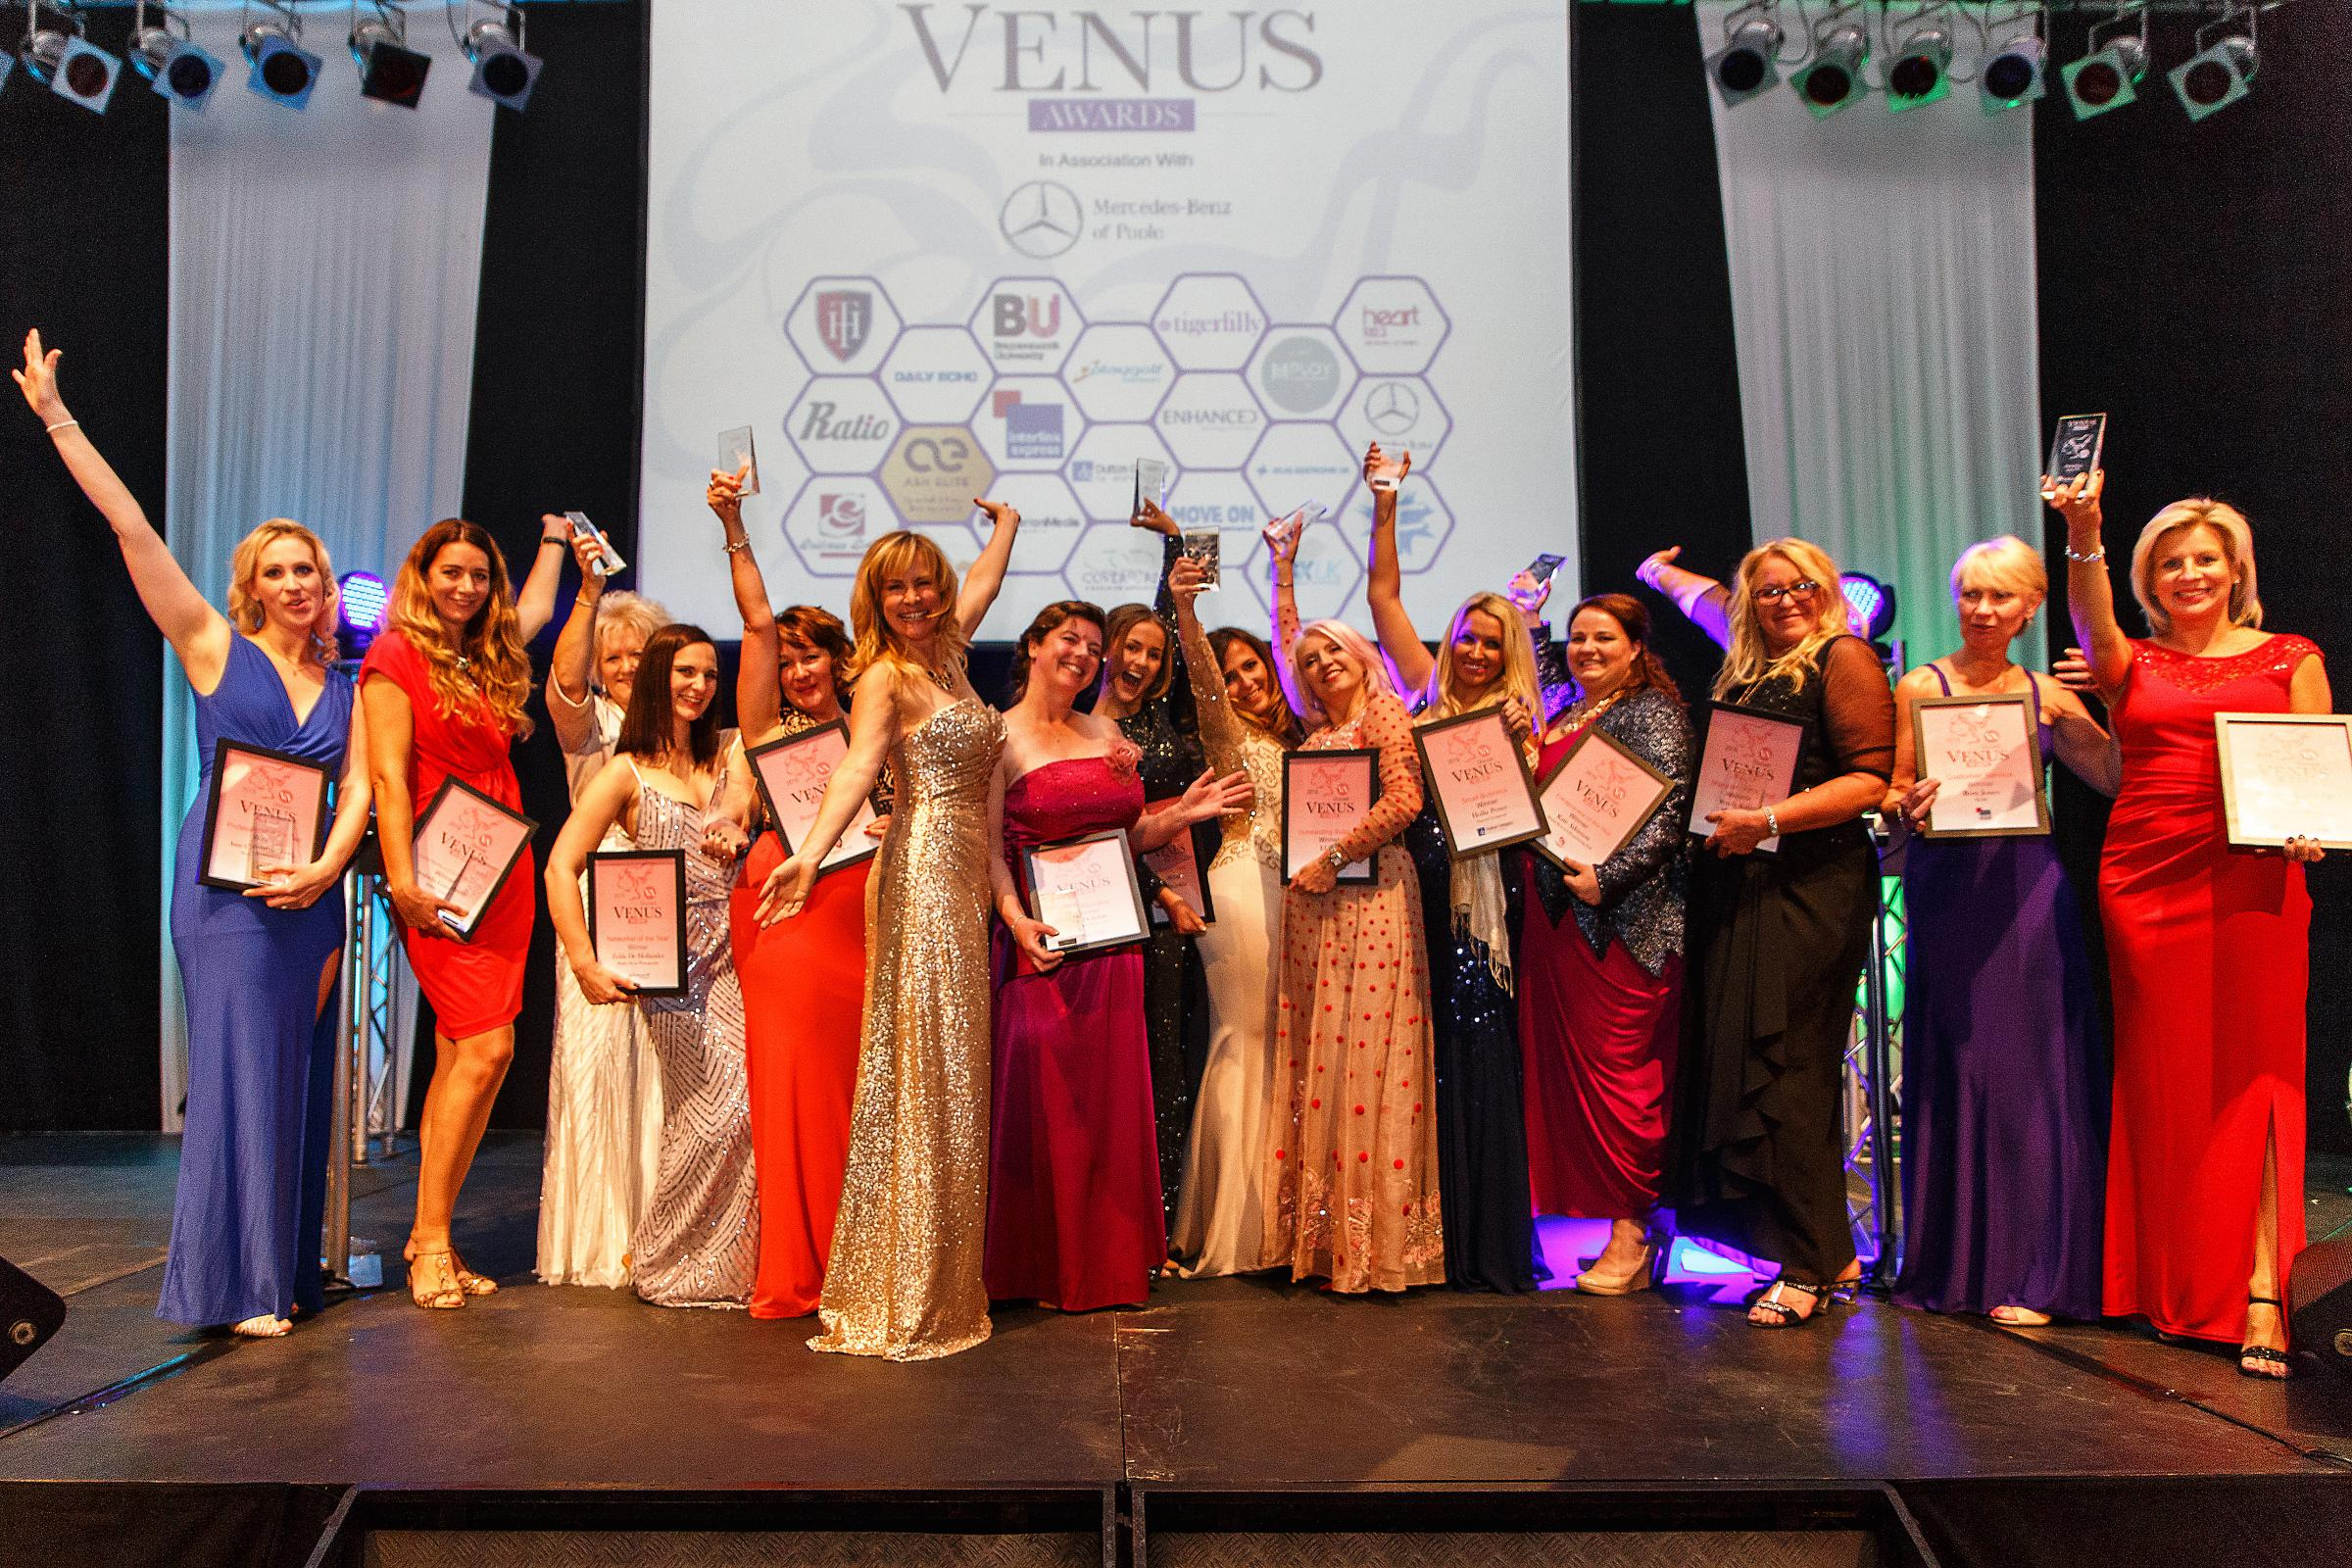 All of the winners at this year's Dorset Venus Awards. Picture by Jennie Franklin